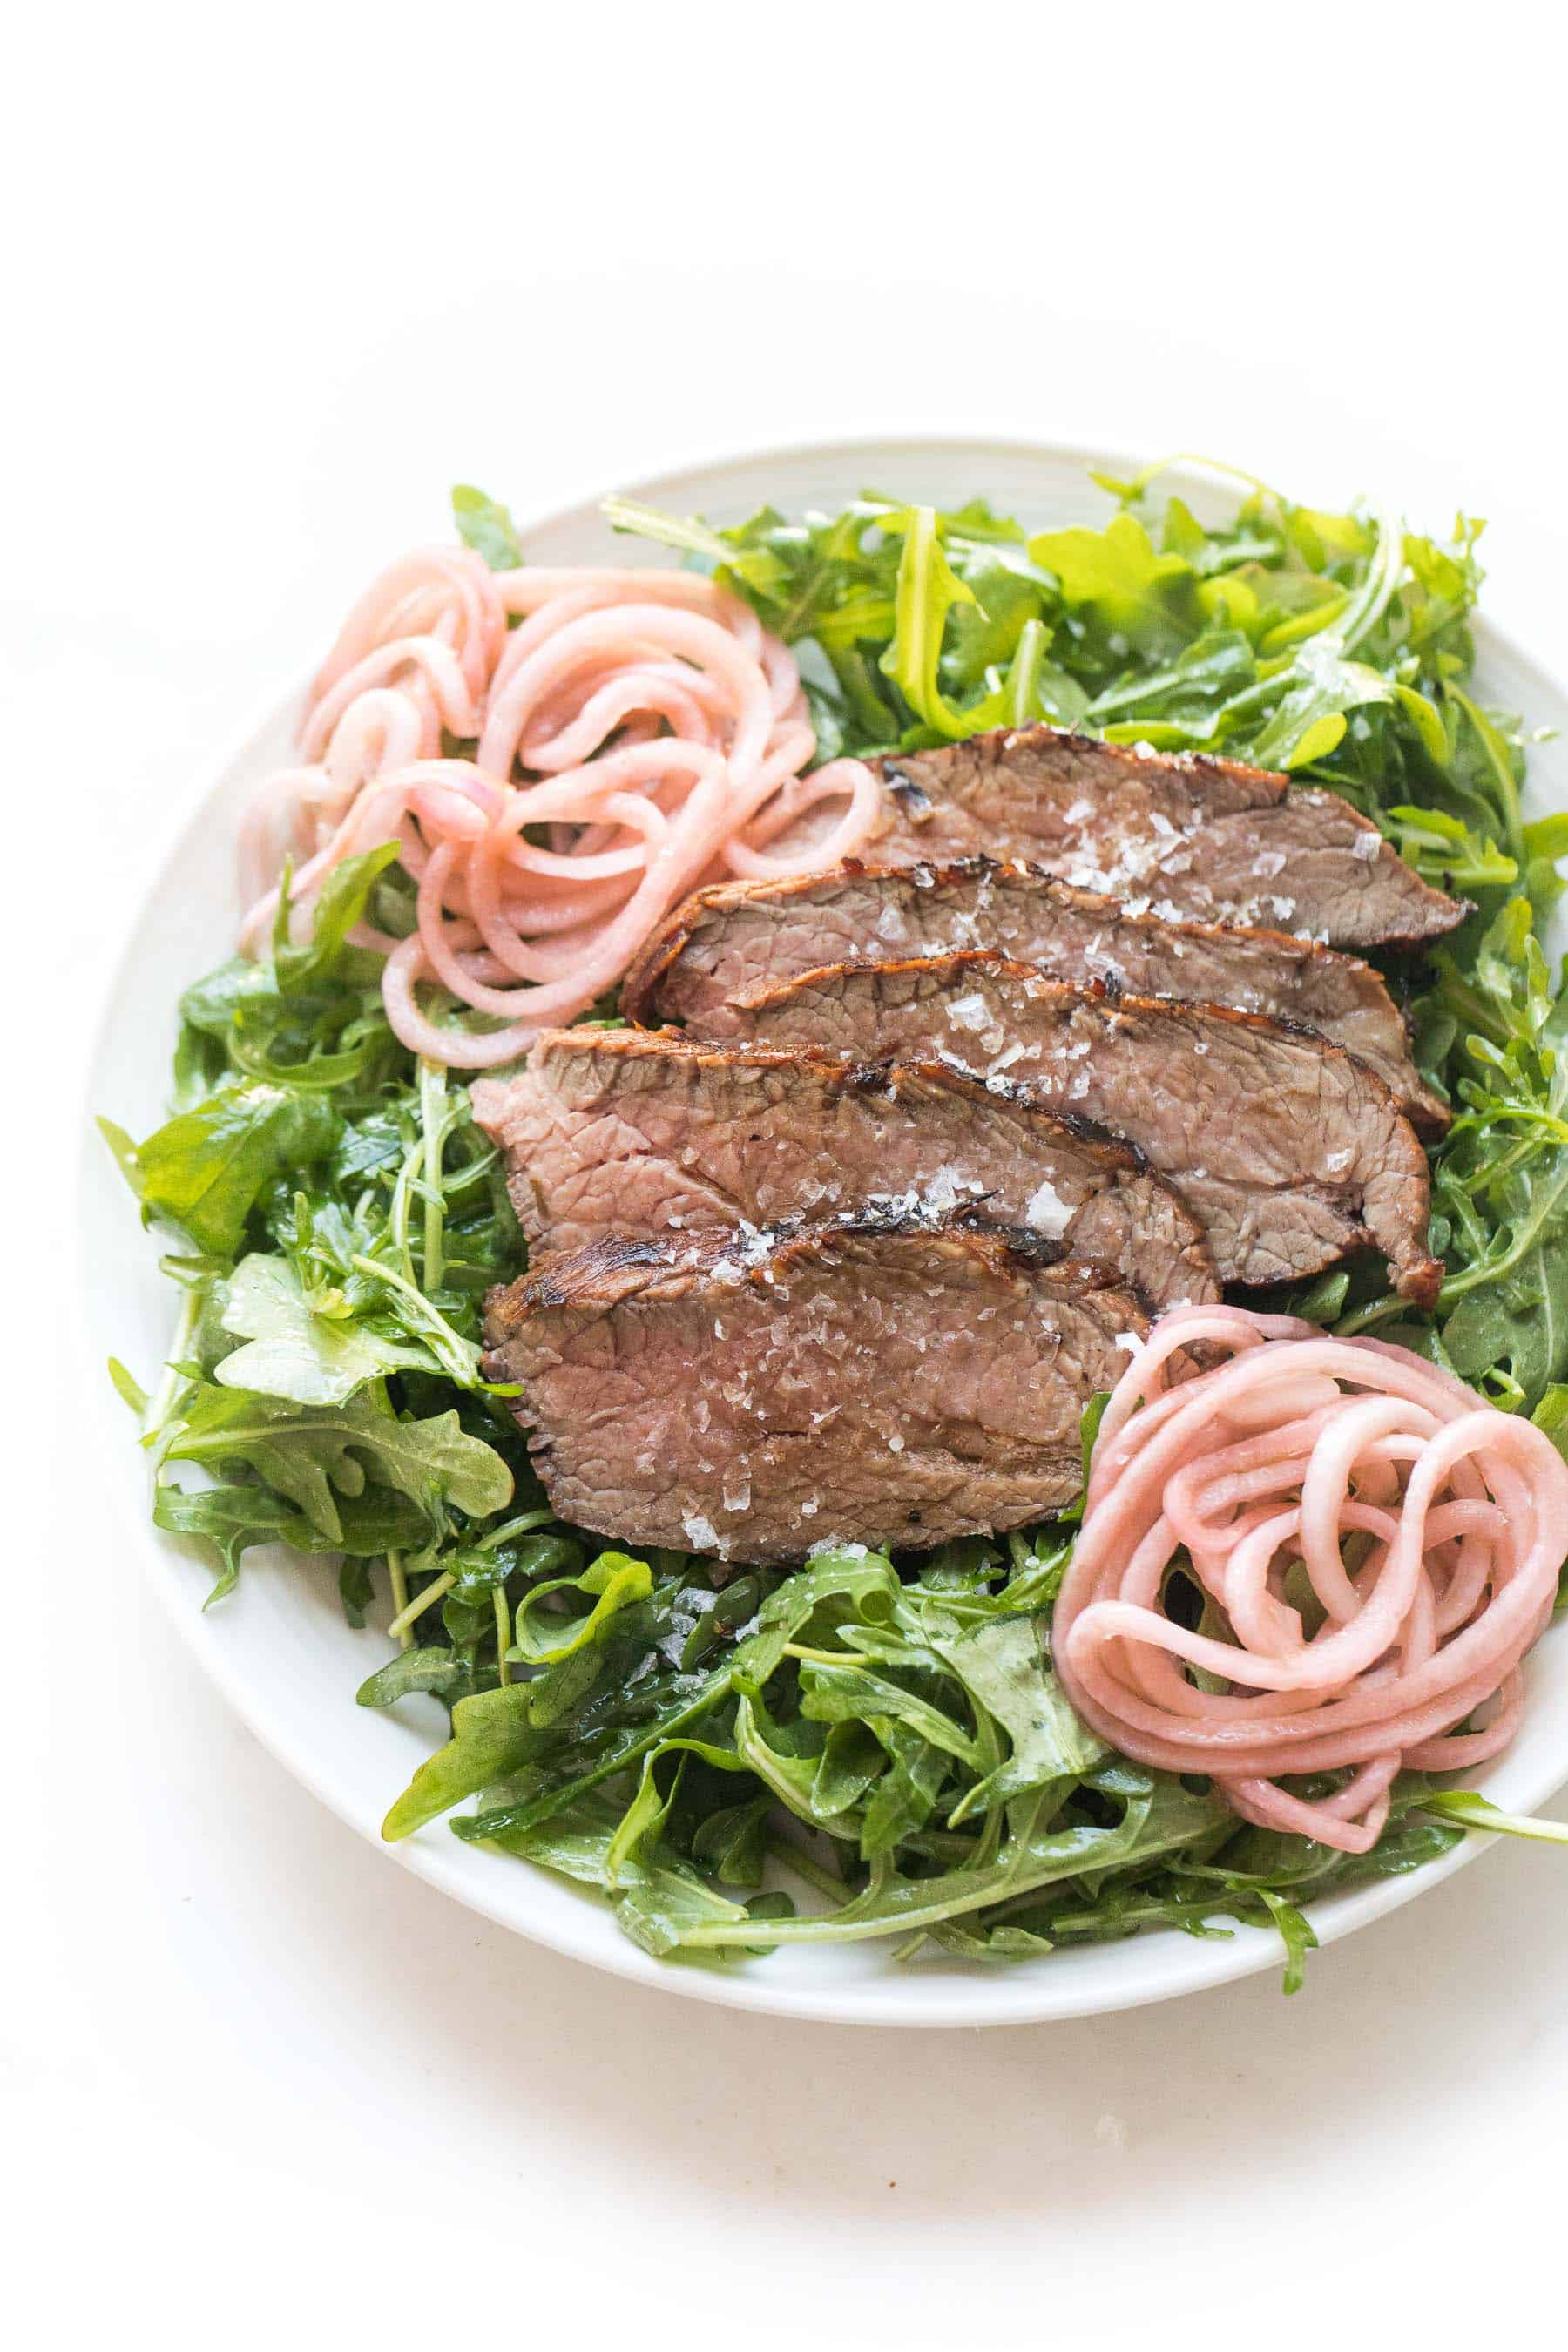 Tri tip arugula salad with pickled onions on a white plate and white background